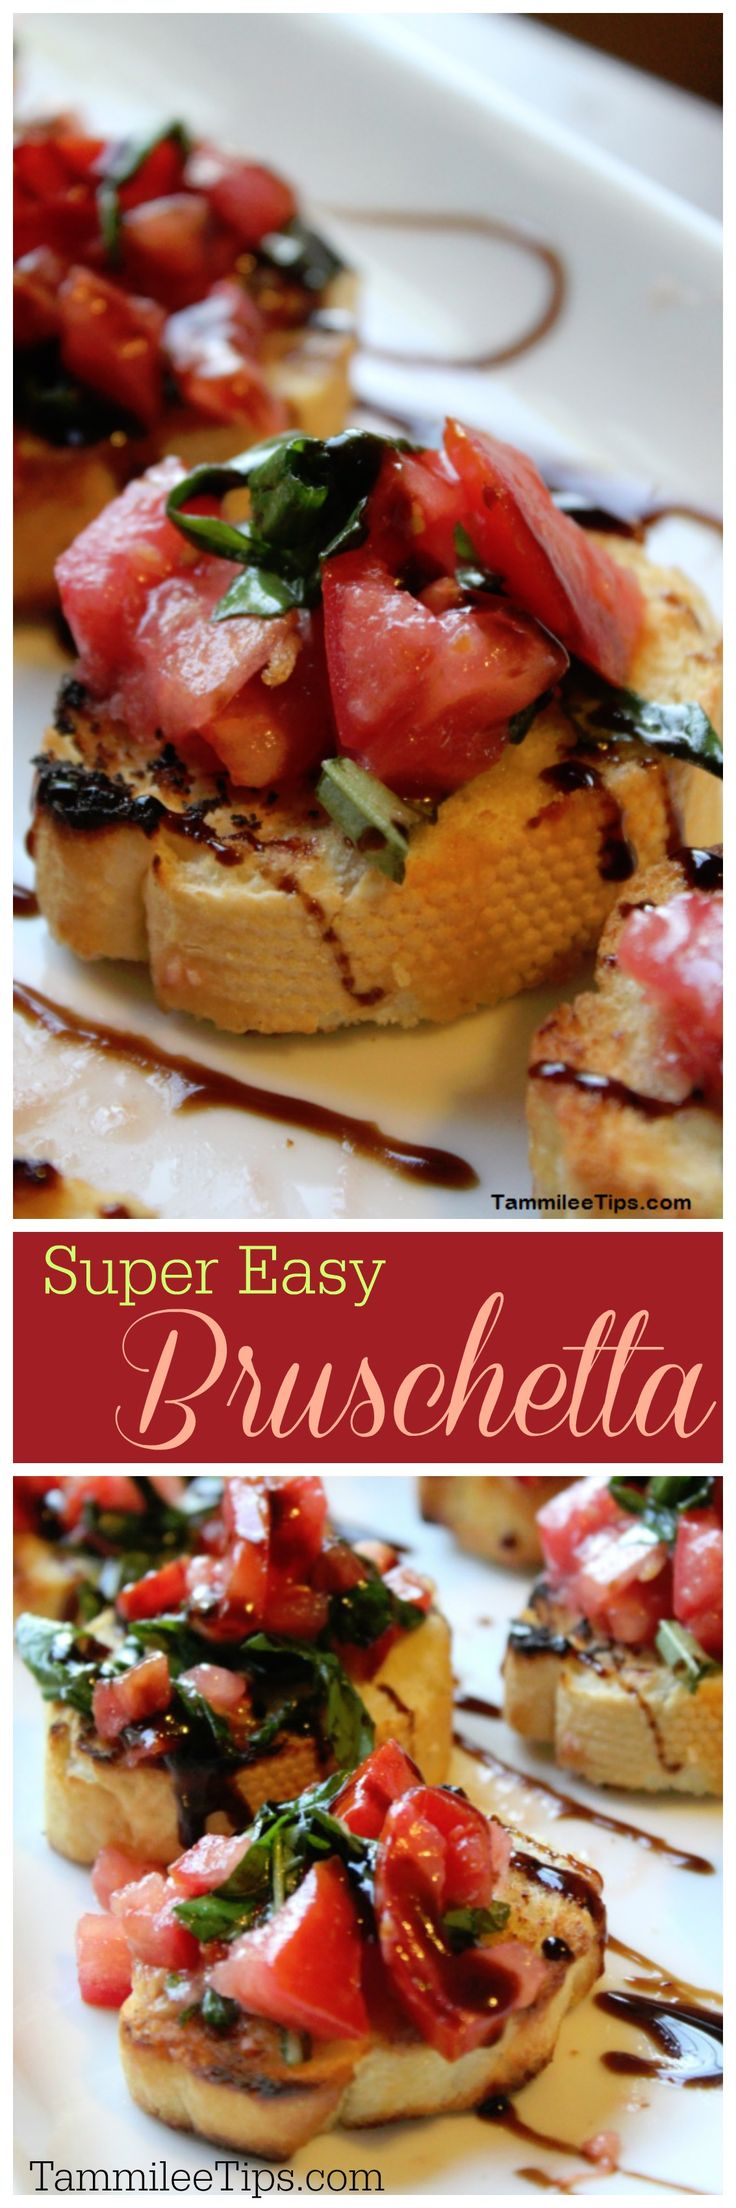 Best 25 super bowl recipes ideas on pinterest super for Super bowl appetizers pinterest